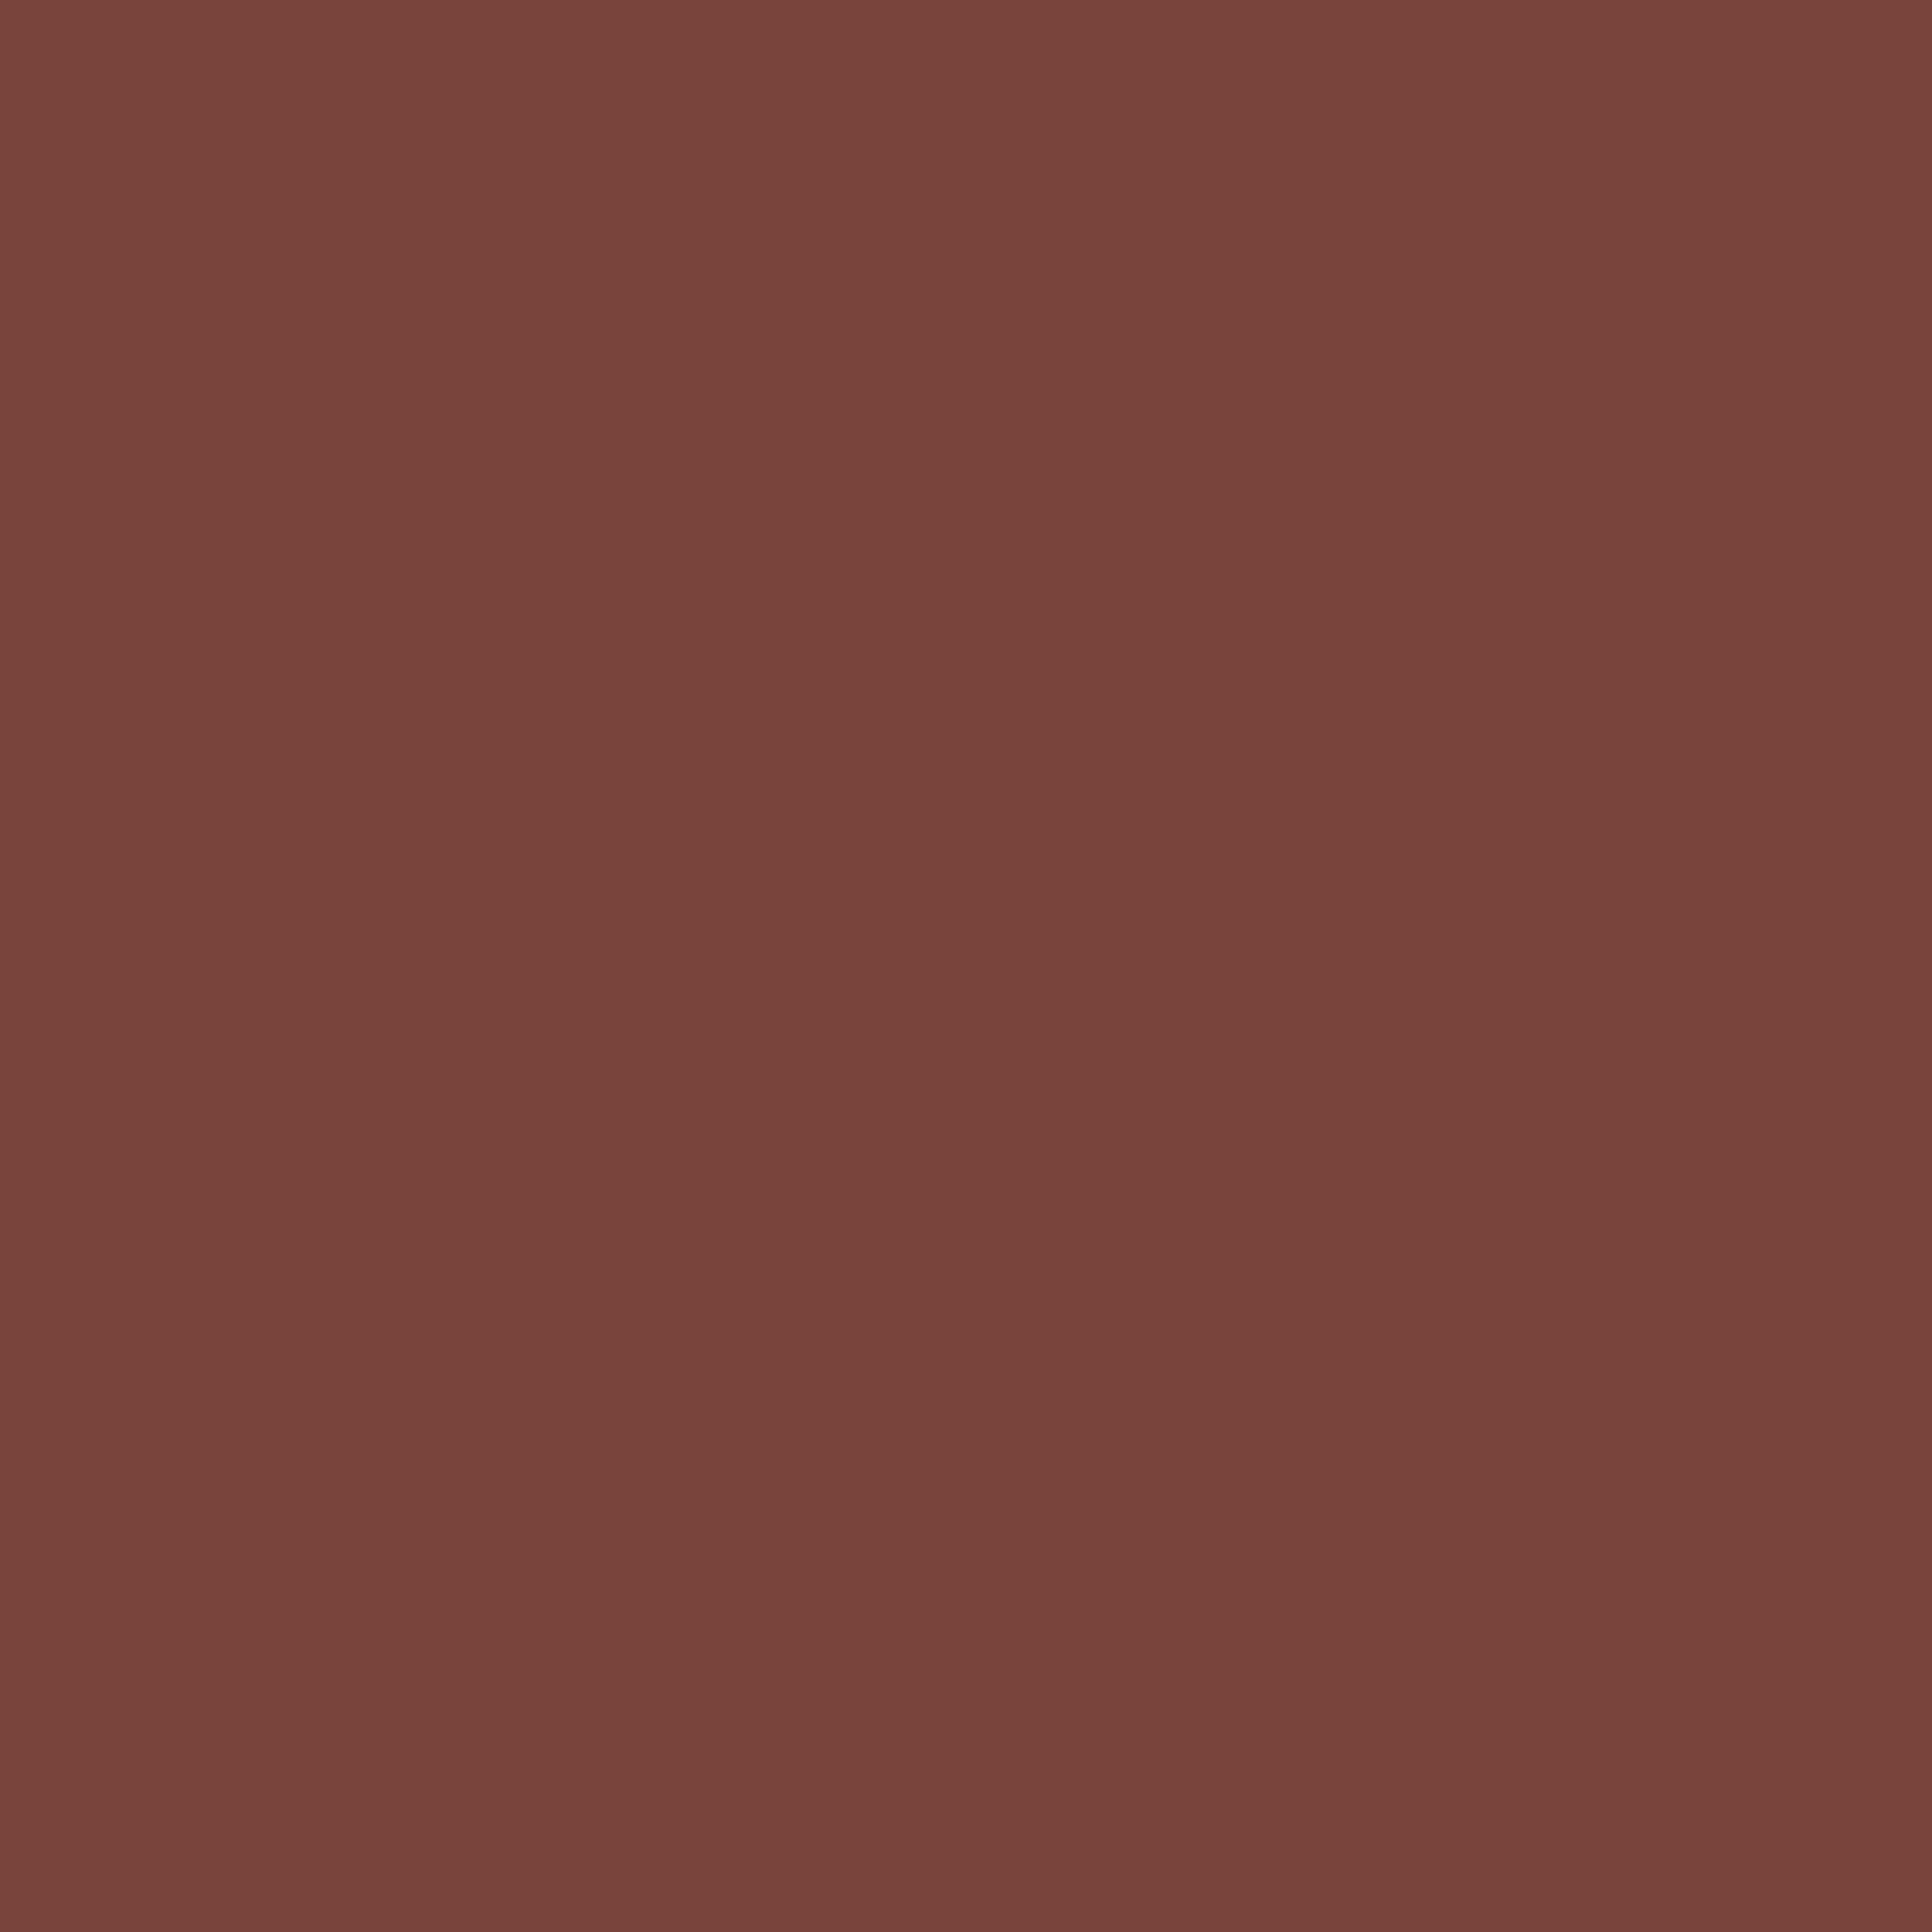 2732x2732 Medium Tuscan Red Solid Color Background